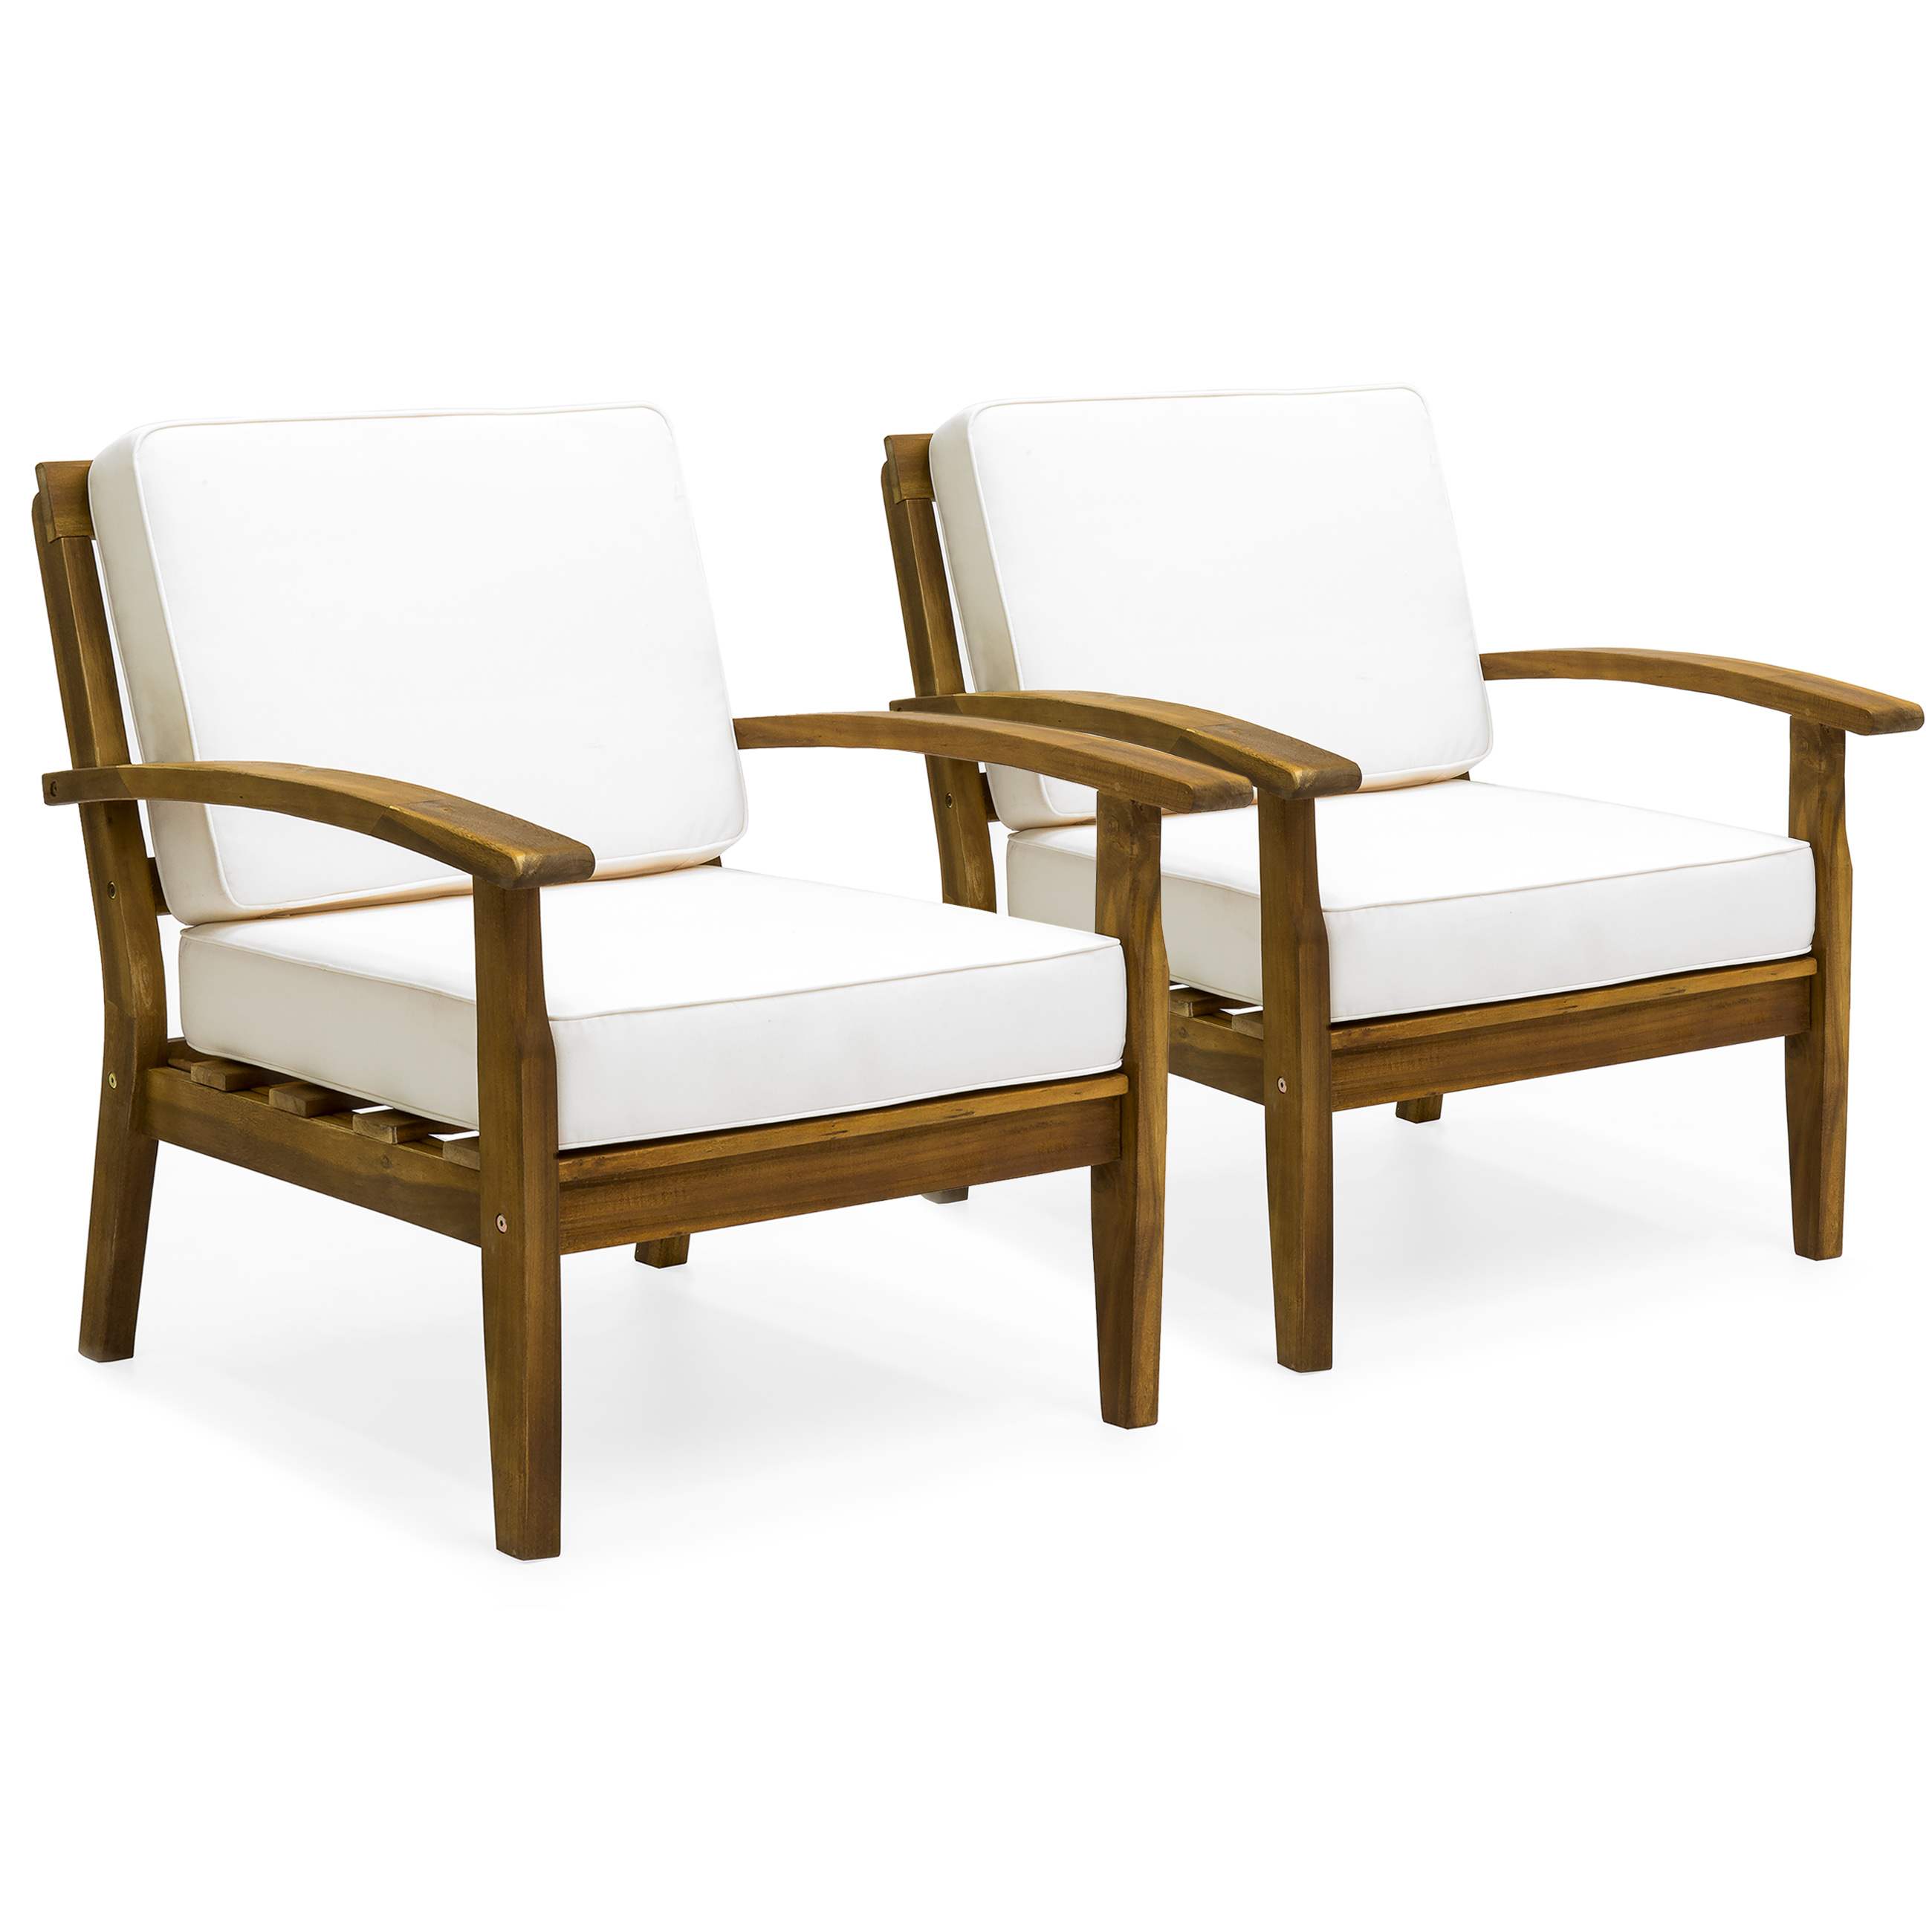 Best Choice Products Set of 2 Outdoor Acacia Wood Club Chairs w/ Cushions (Red)